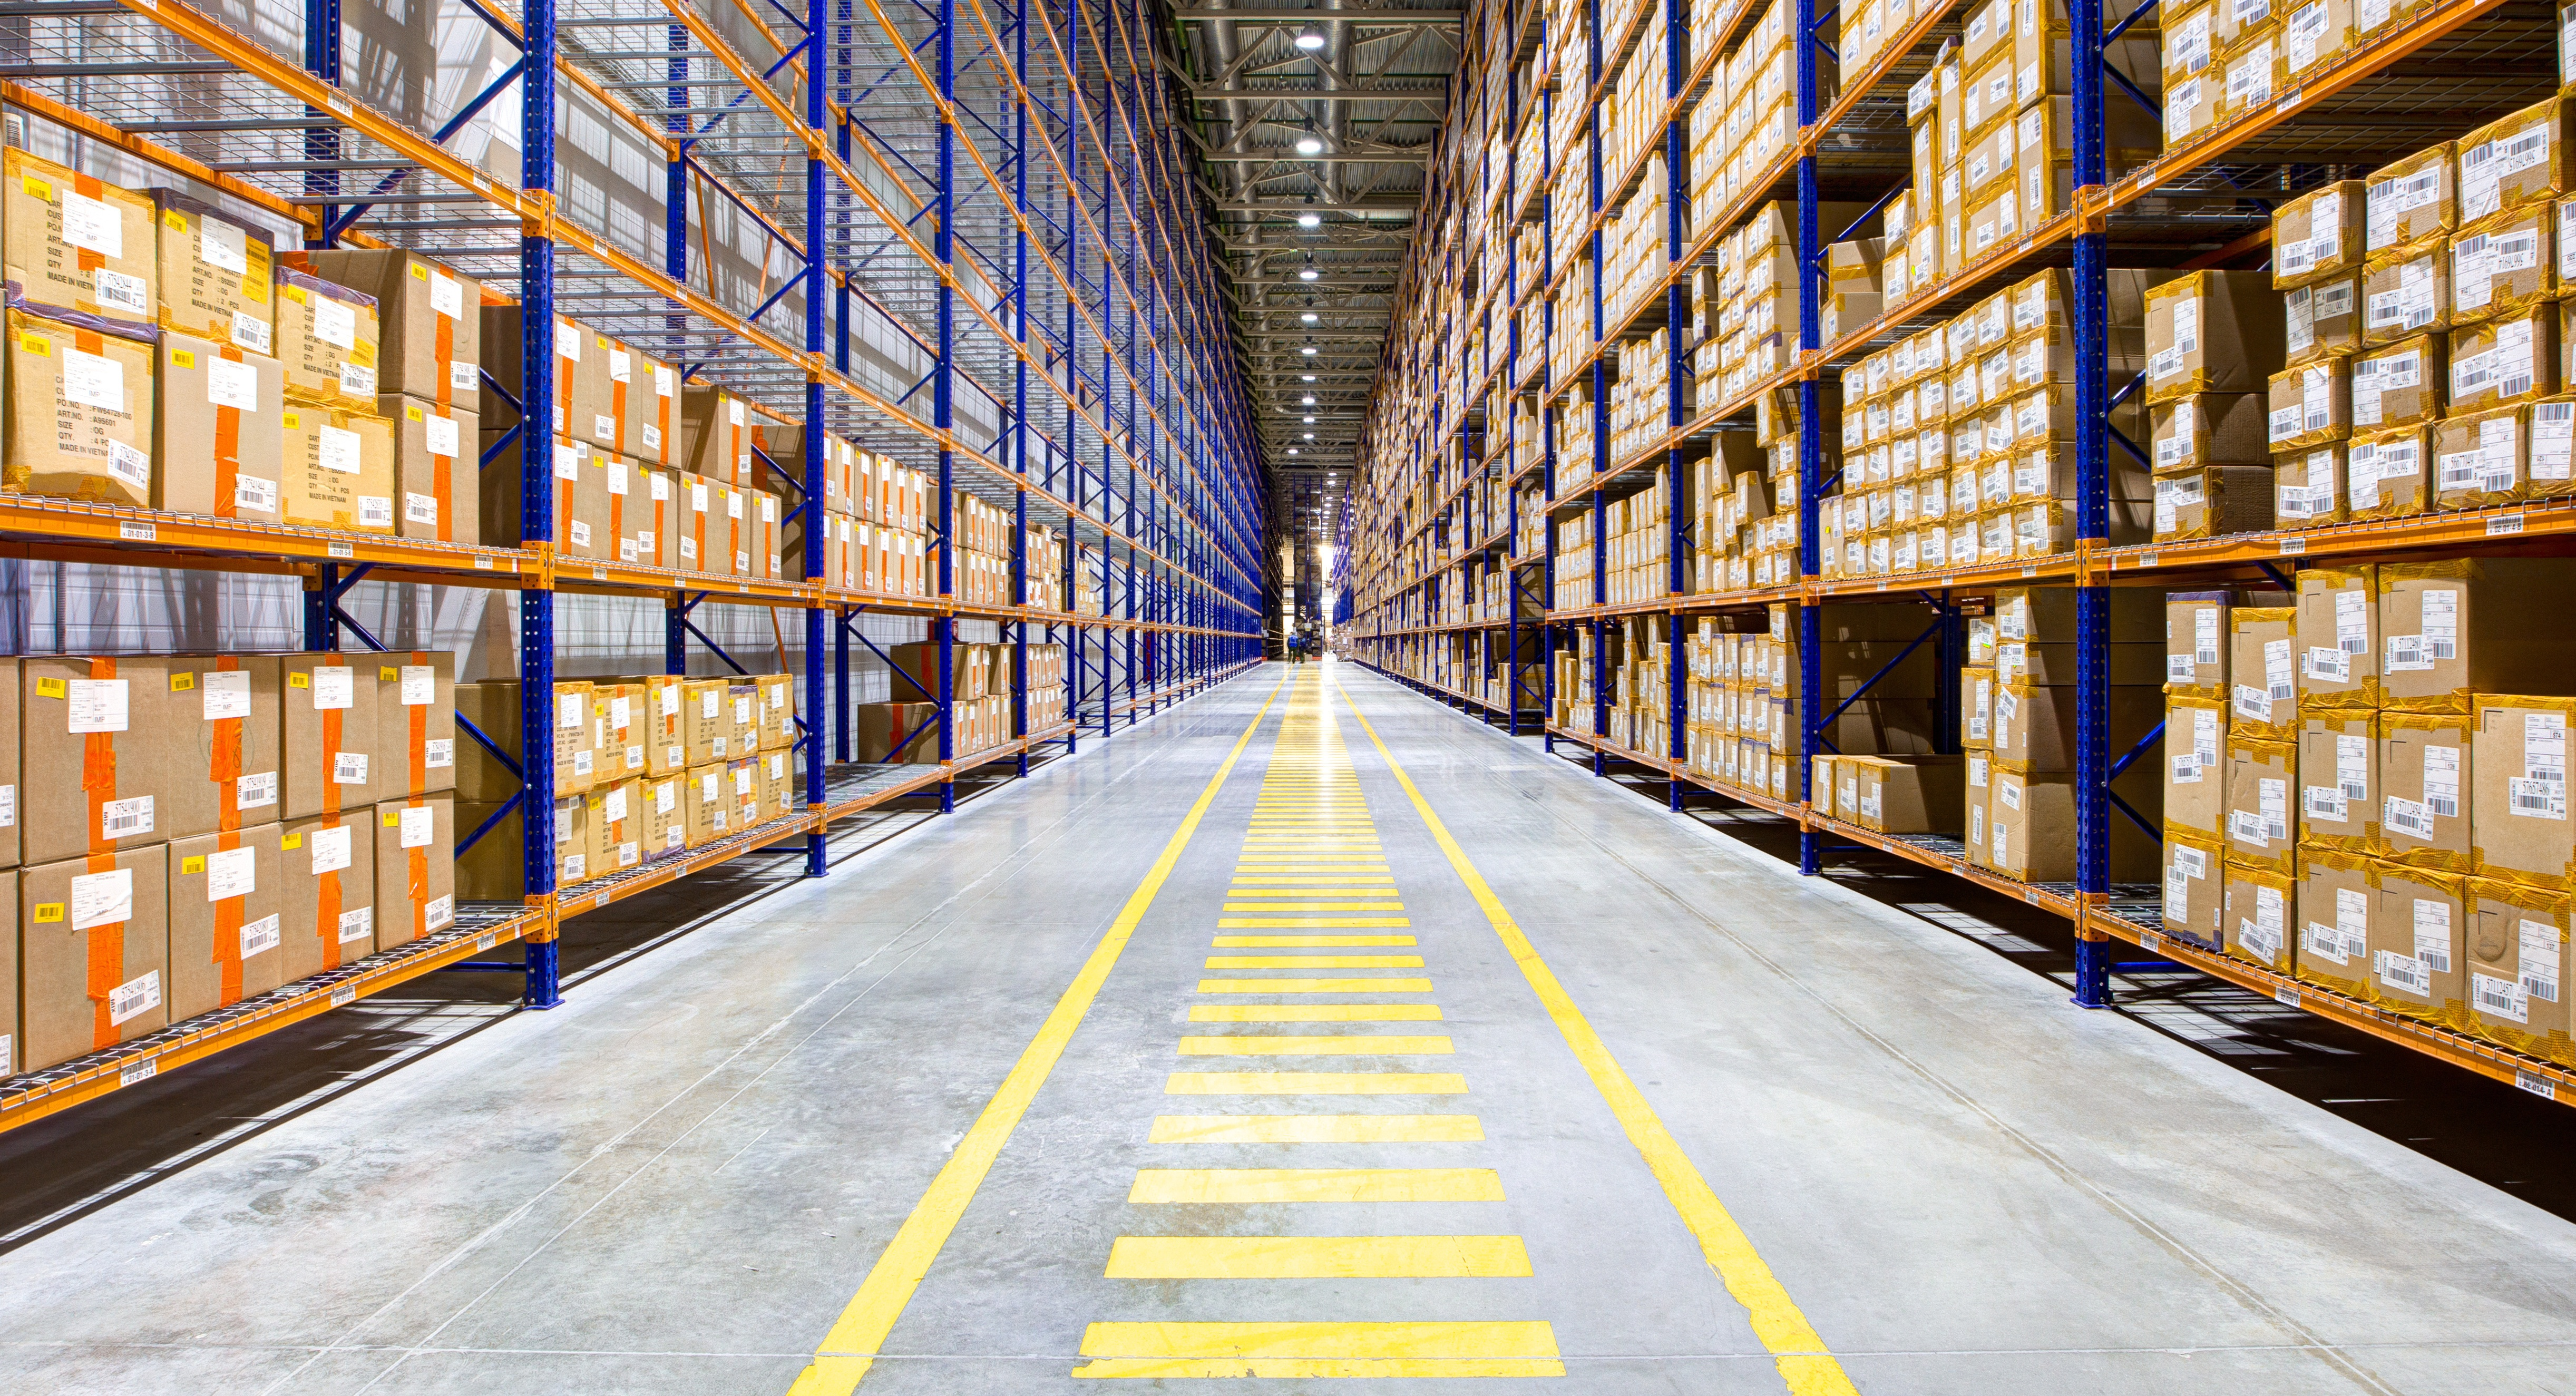 large-warehouse-interior-1